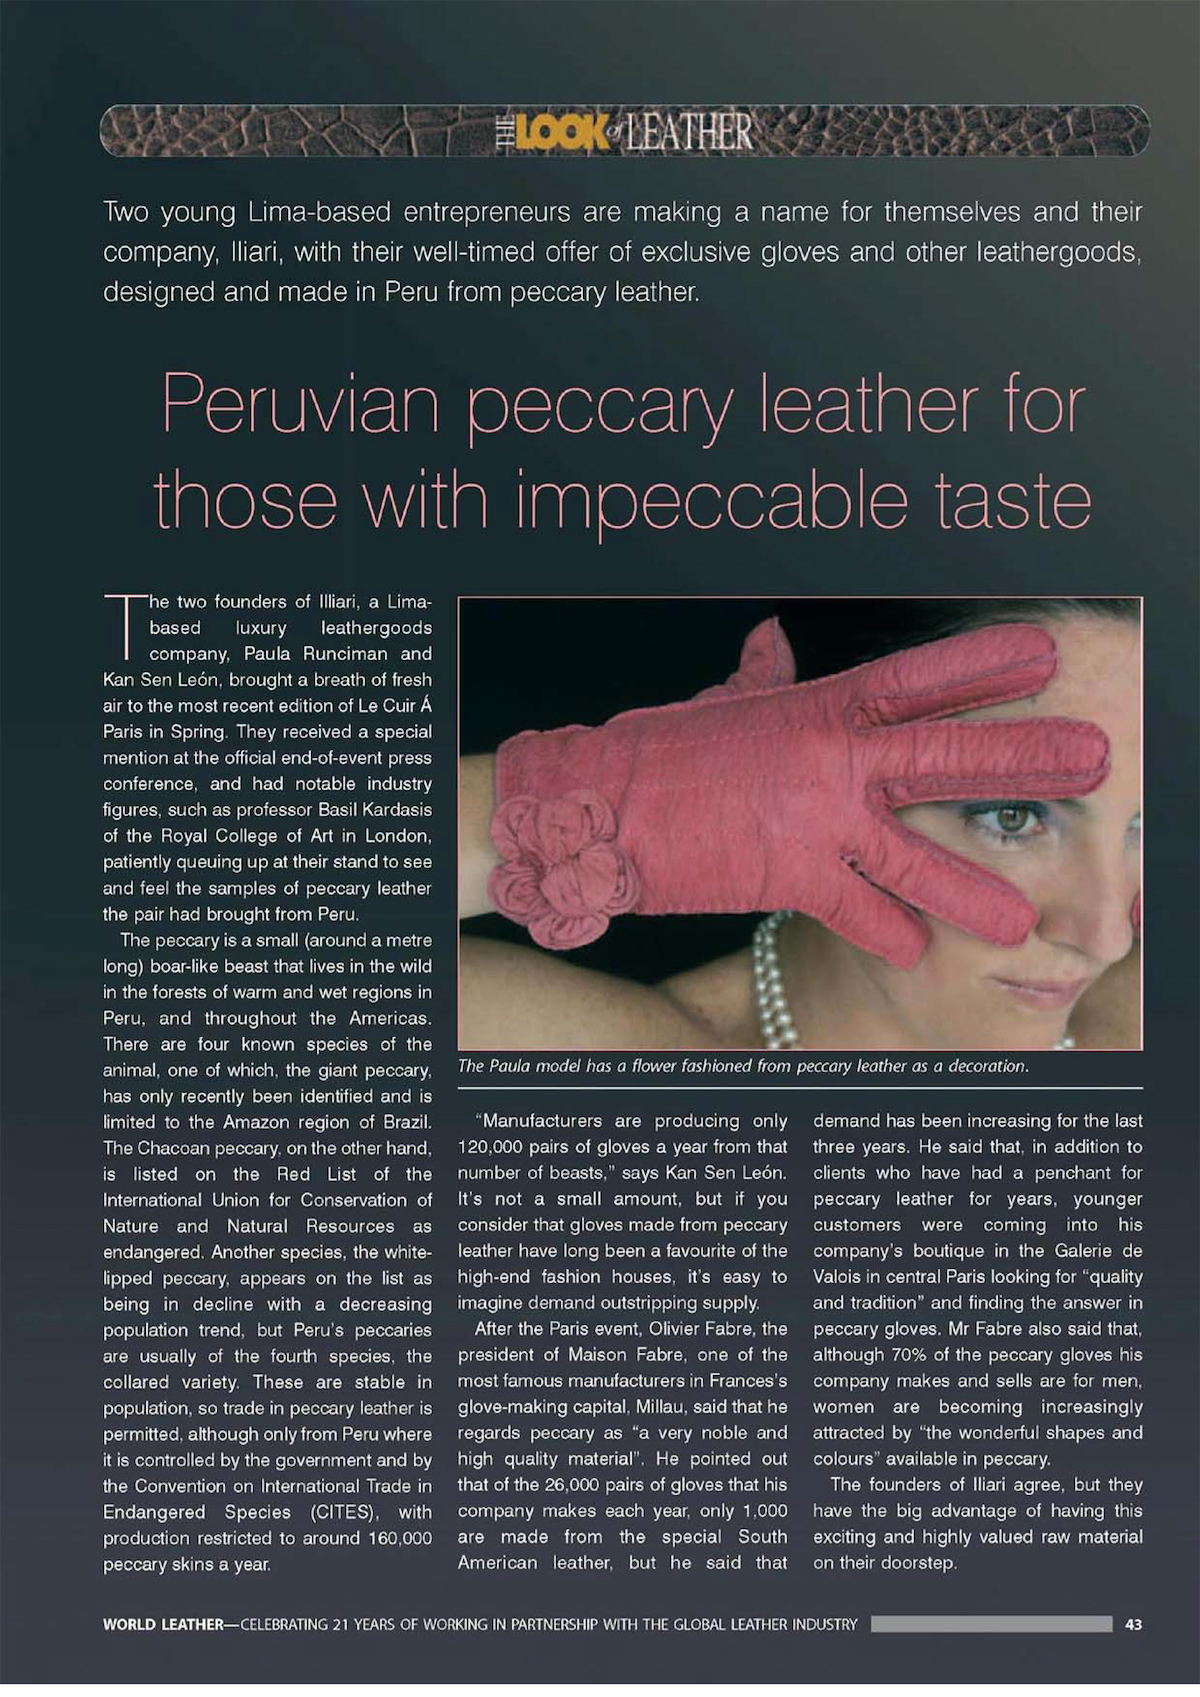 Revistă WorldLeather